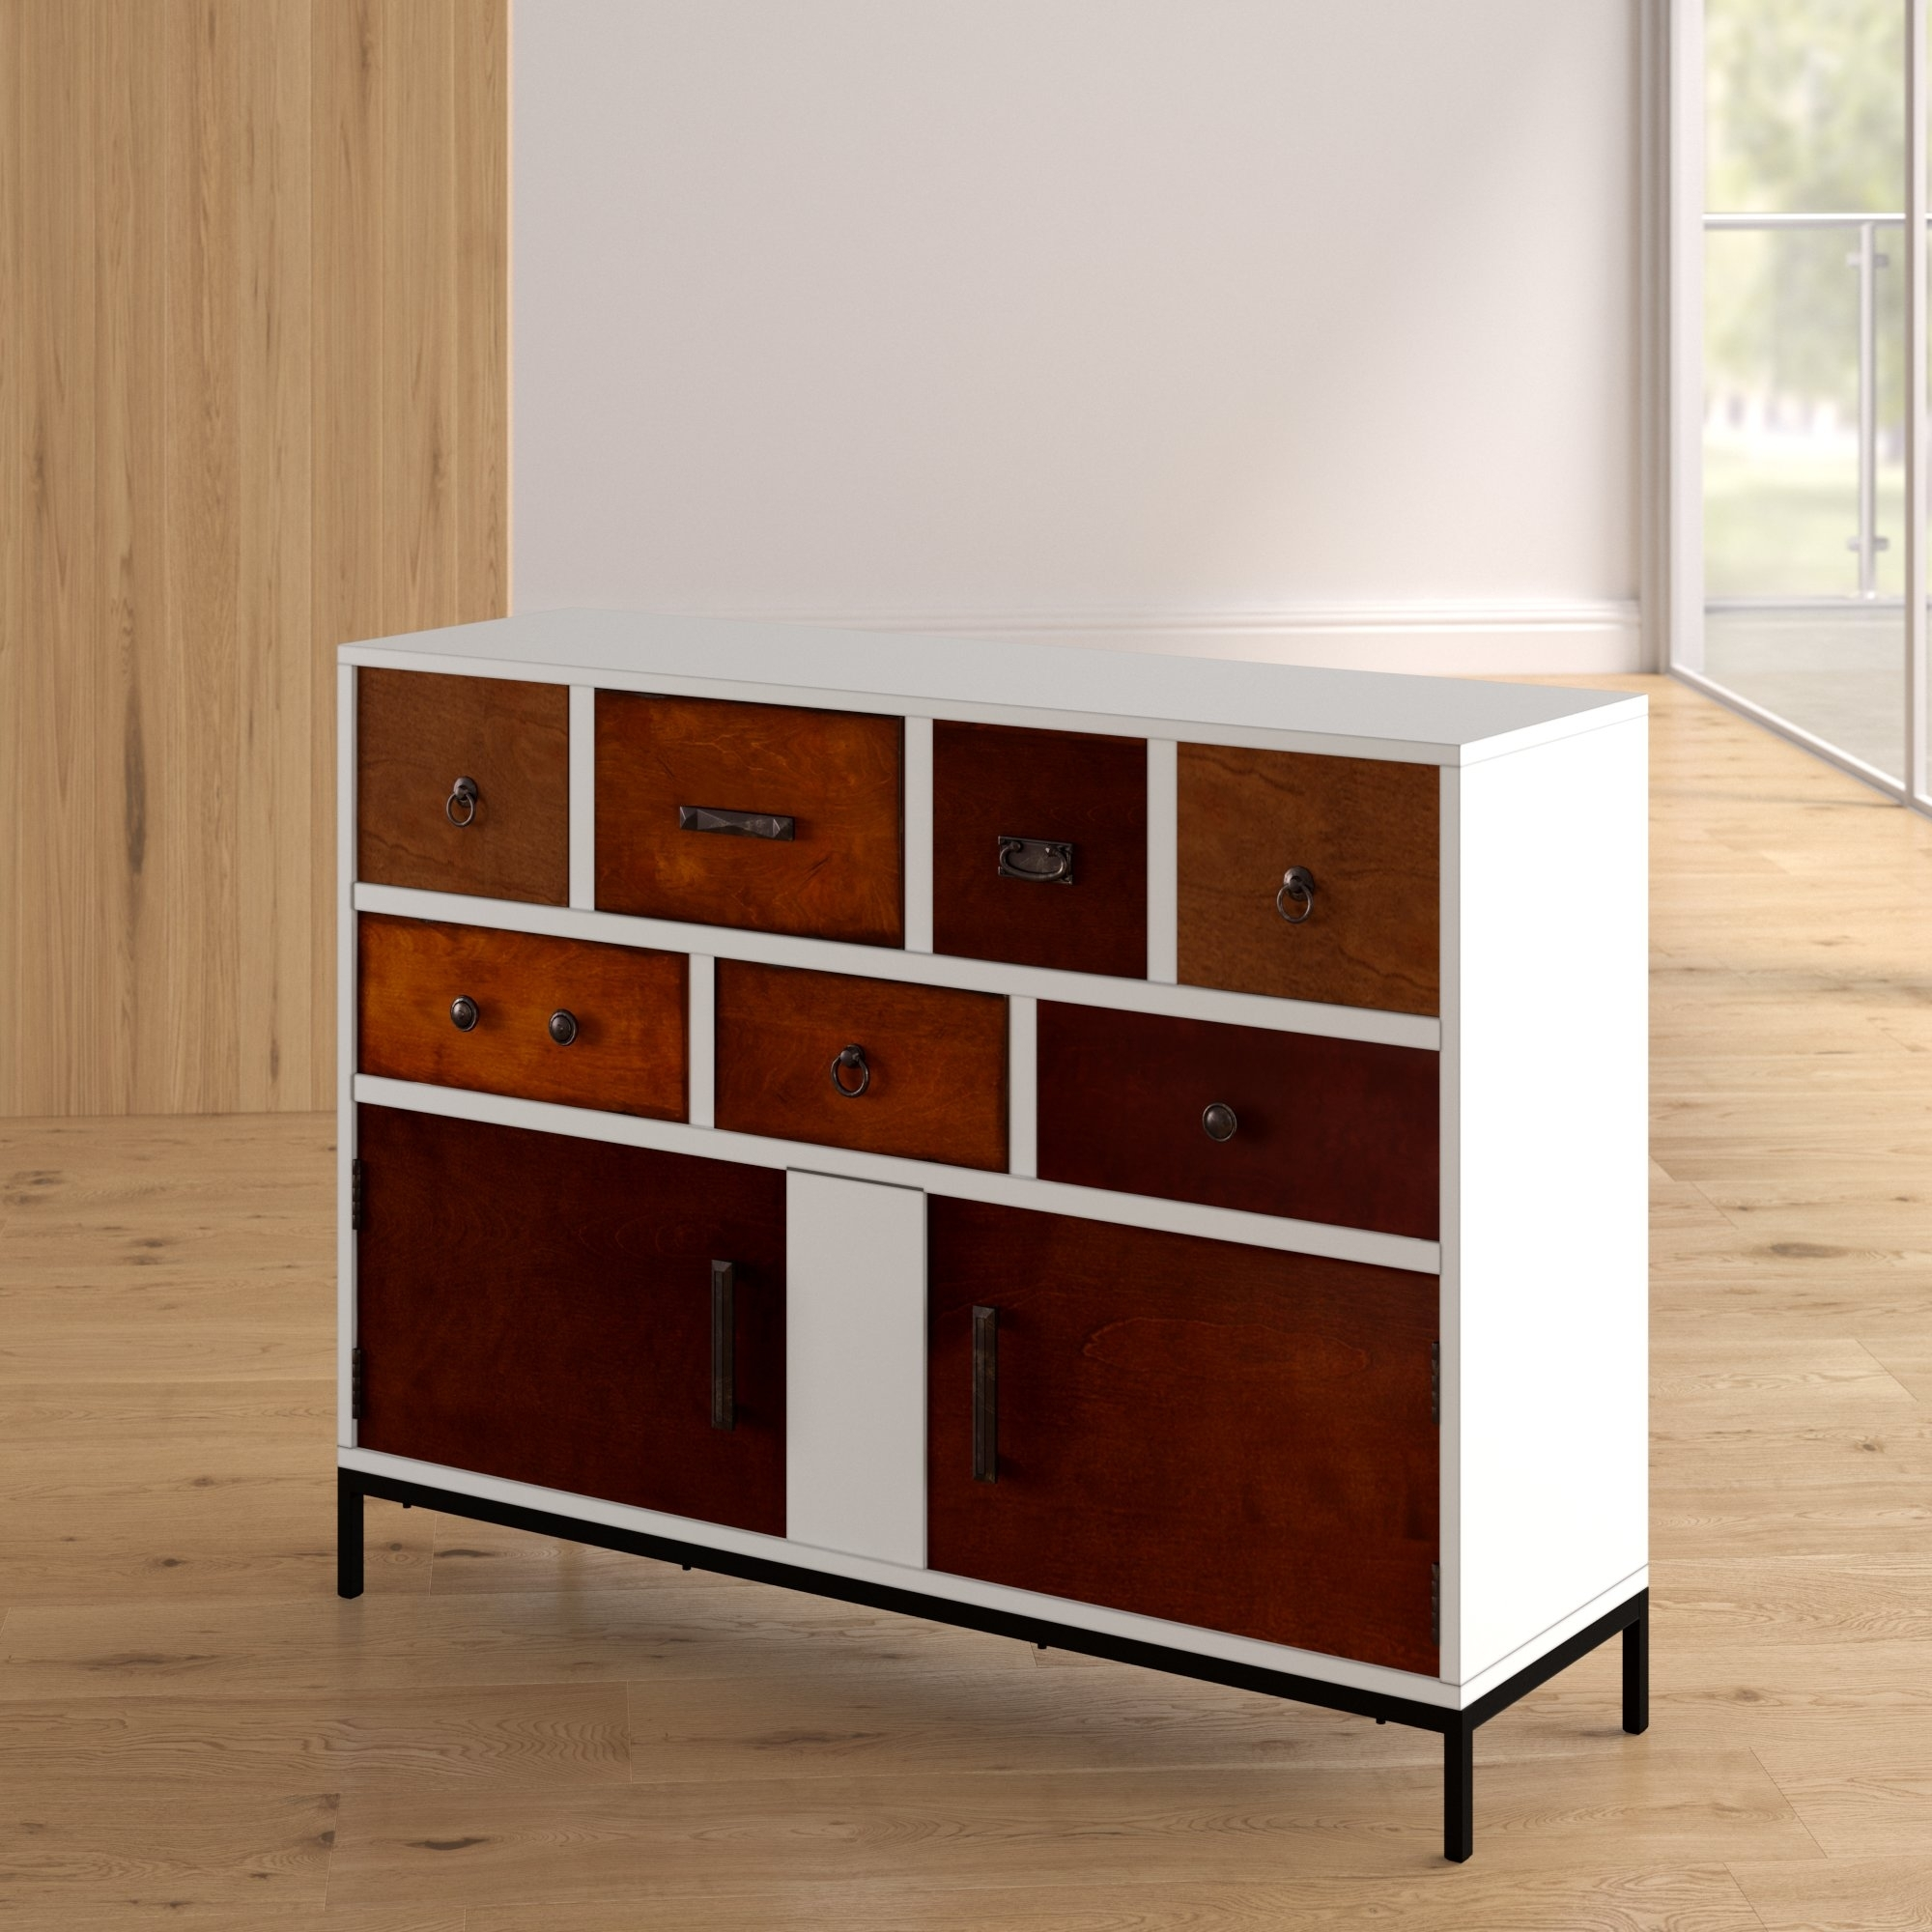 Brayden Studio Galgano 2 Door Accent Cabinet & Reviews | Wayfair within Oil Pale Finish 4-Door Sideboards (Image 9 of 30)